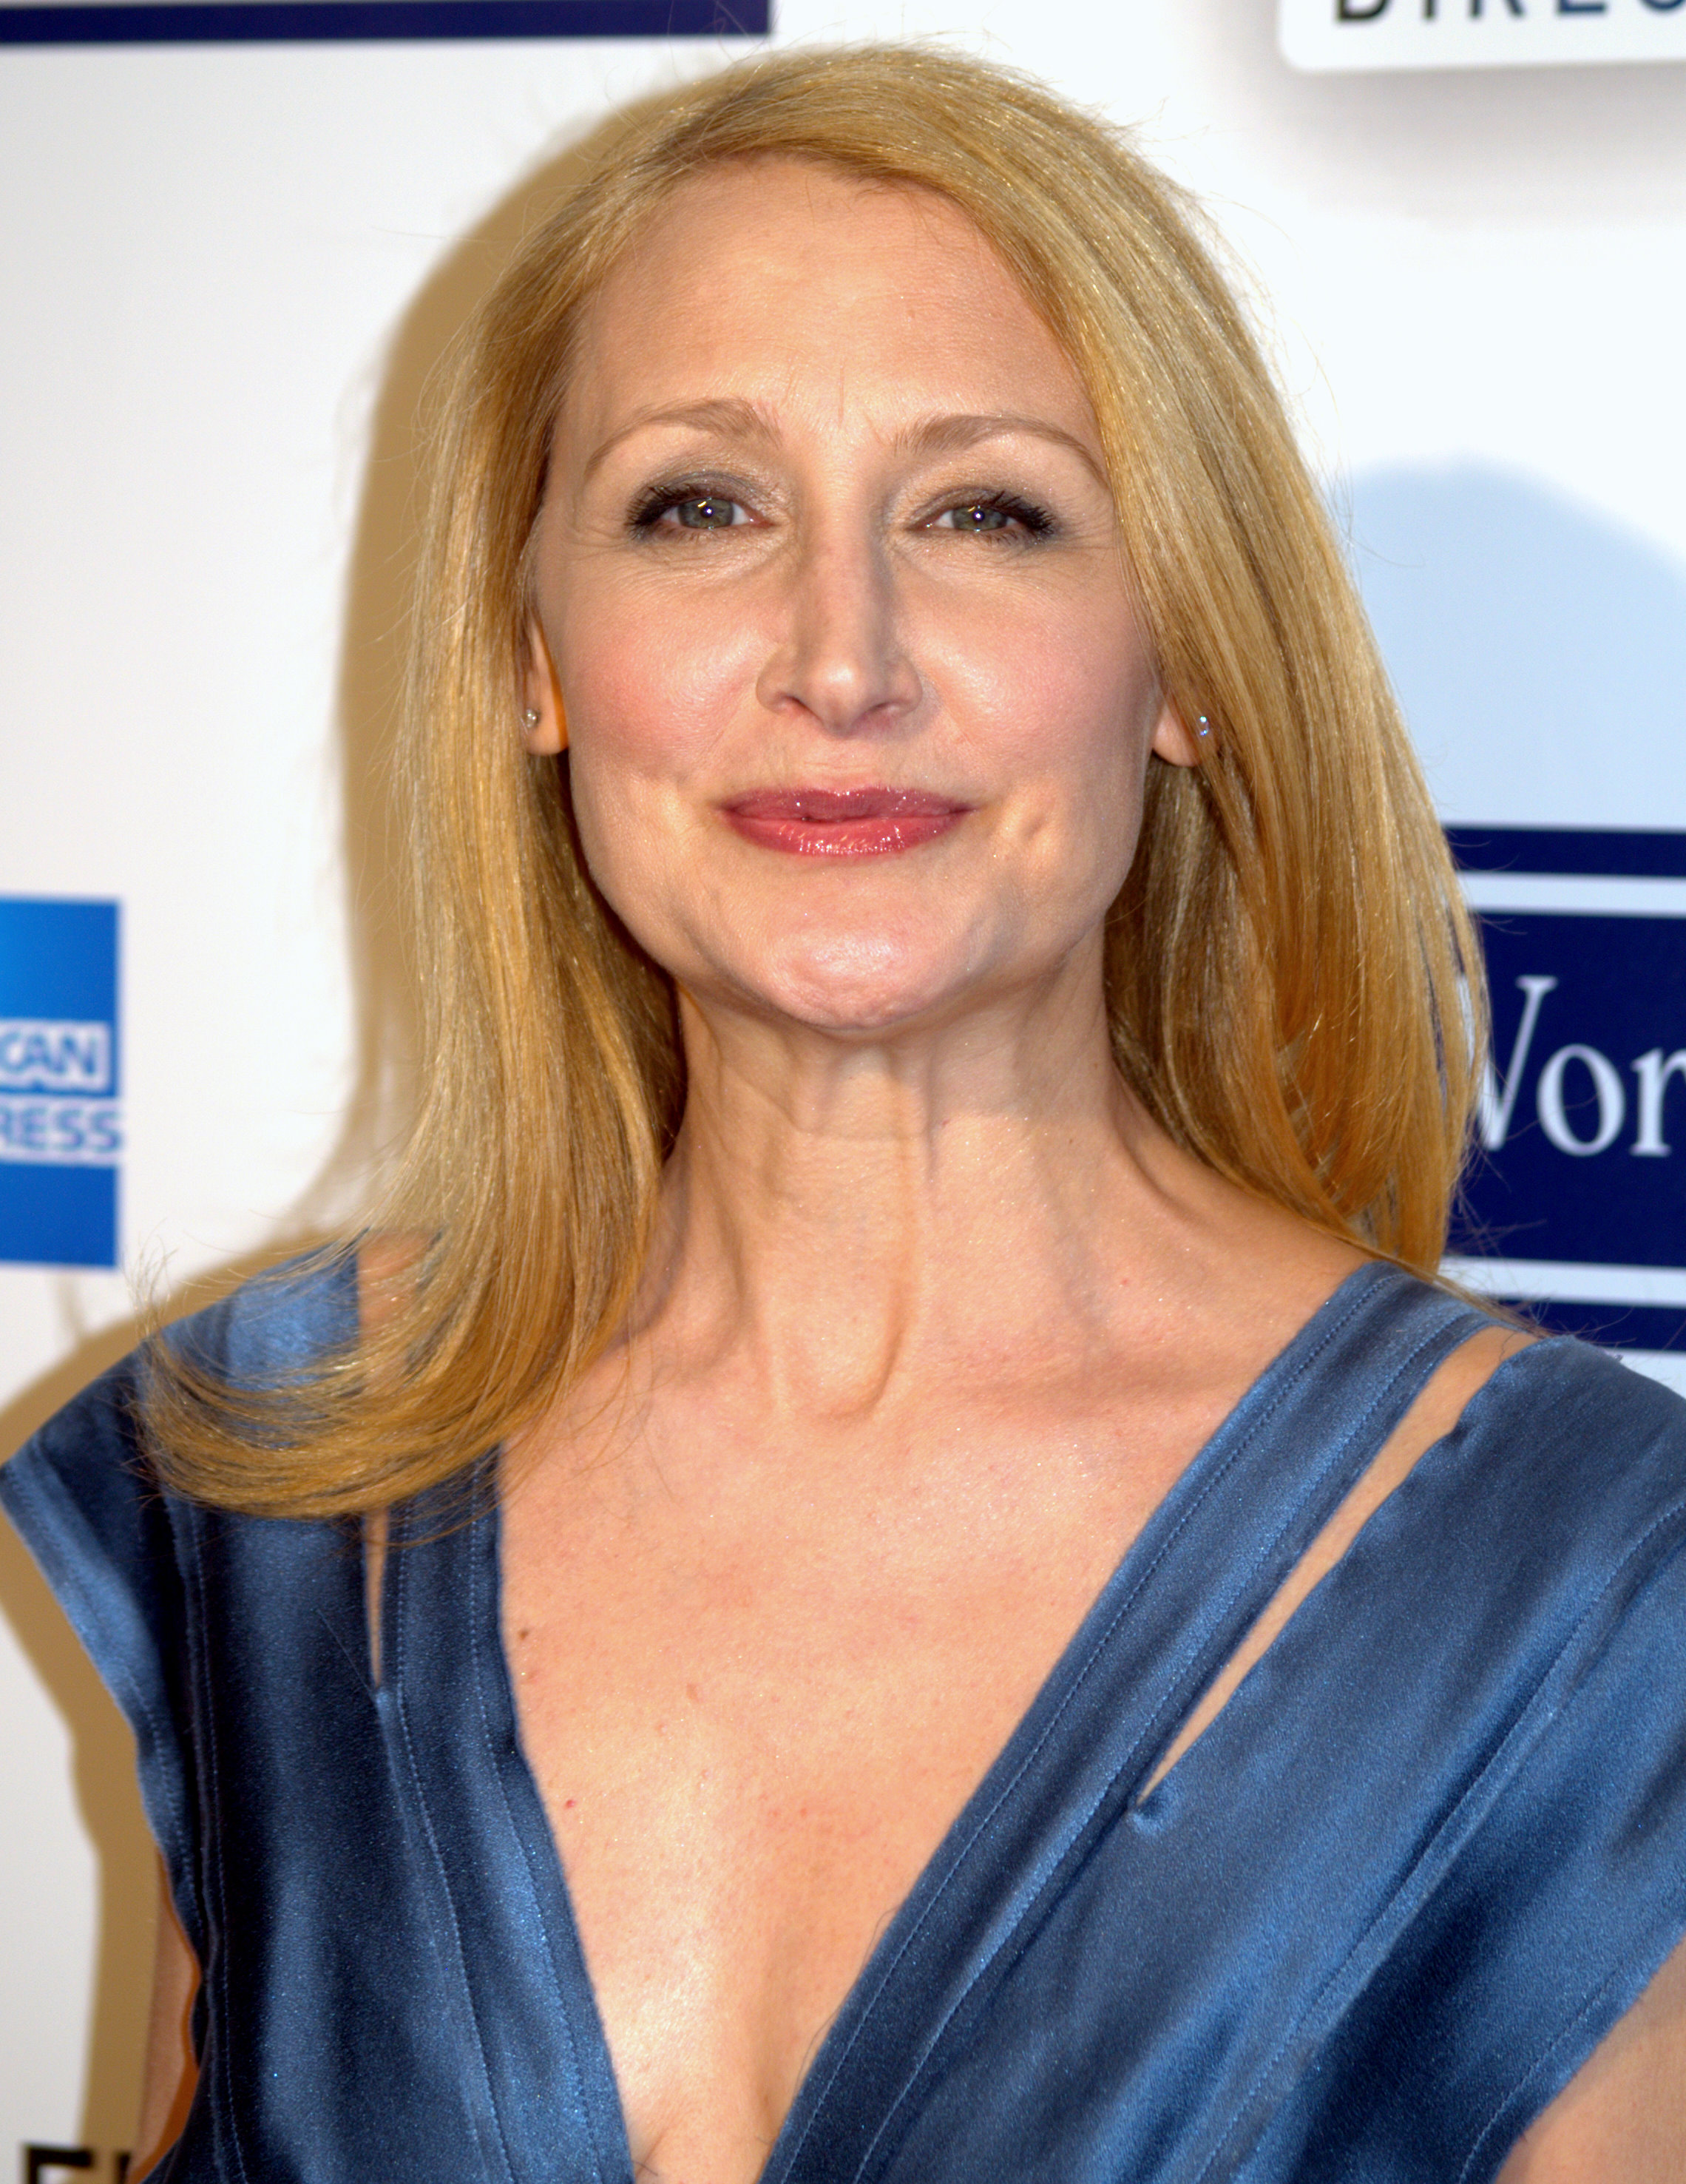 The 57-year old daughter of father Arthur Clarkson and mother Jackie Clarkson, 165 cm tall Patricia Clarkson in 2017 photo